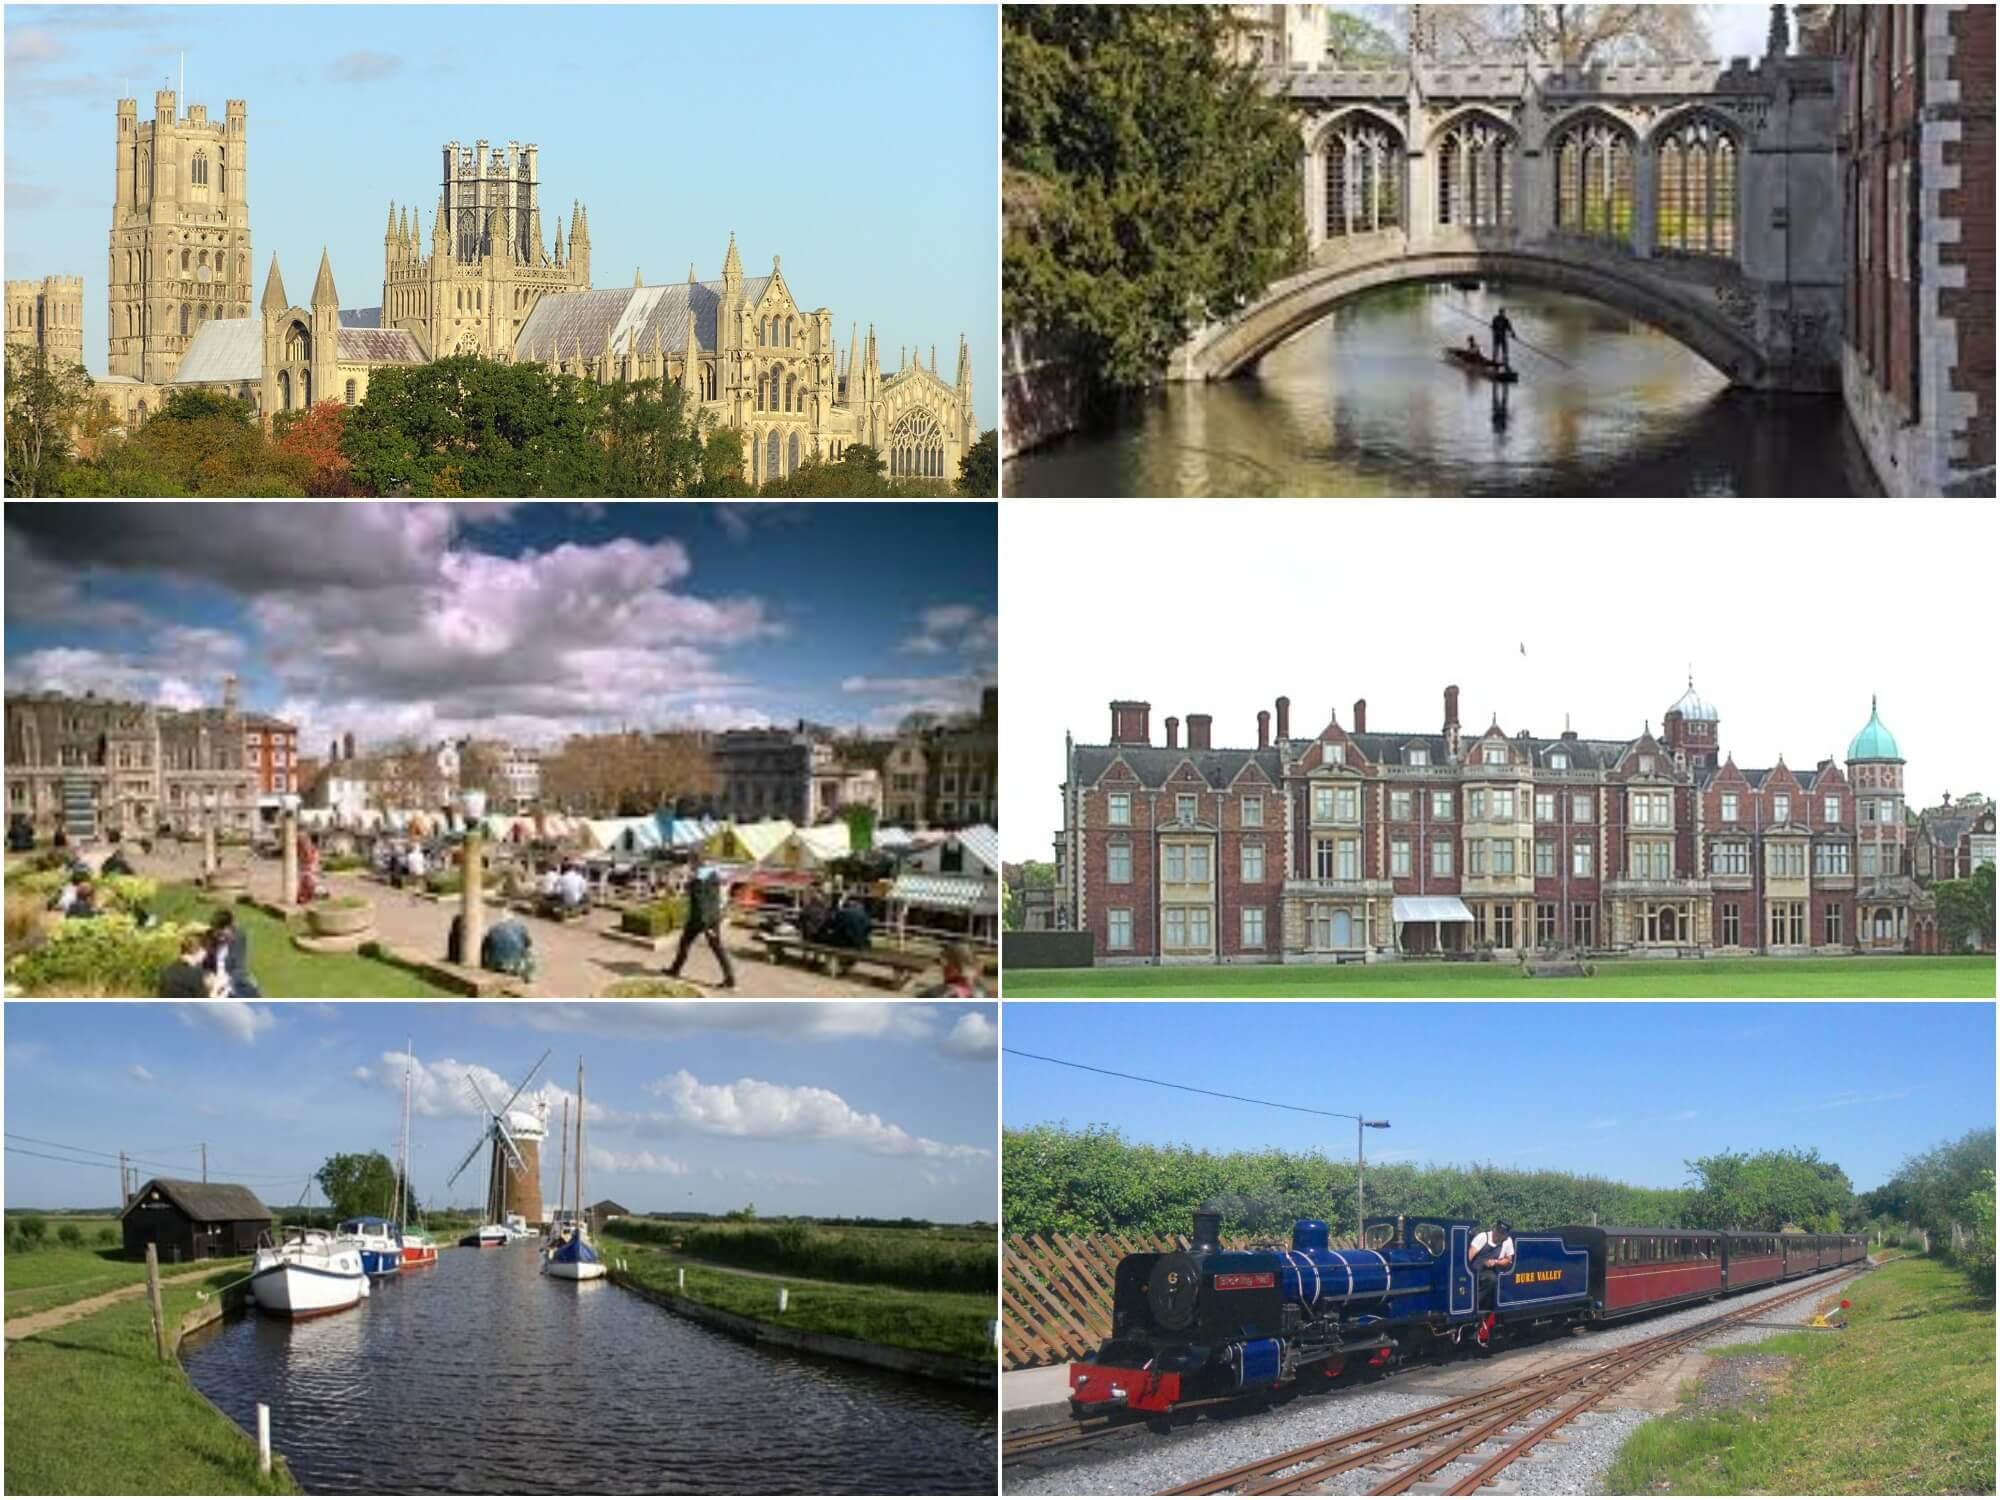 Ely, Cambridge, Norwich, Sandringham, Norfolk Broads & Bure Valley Railway